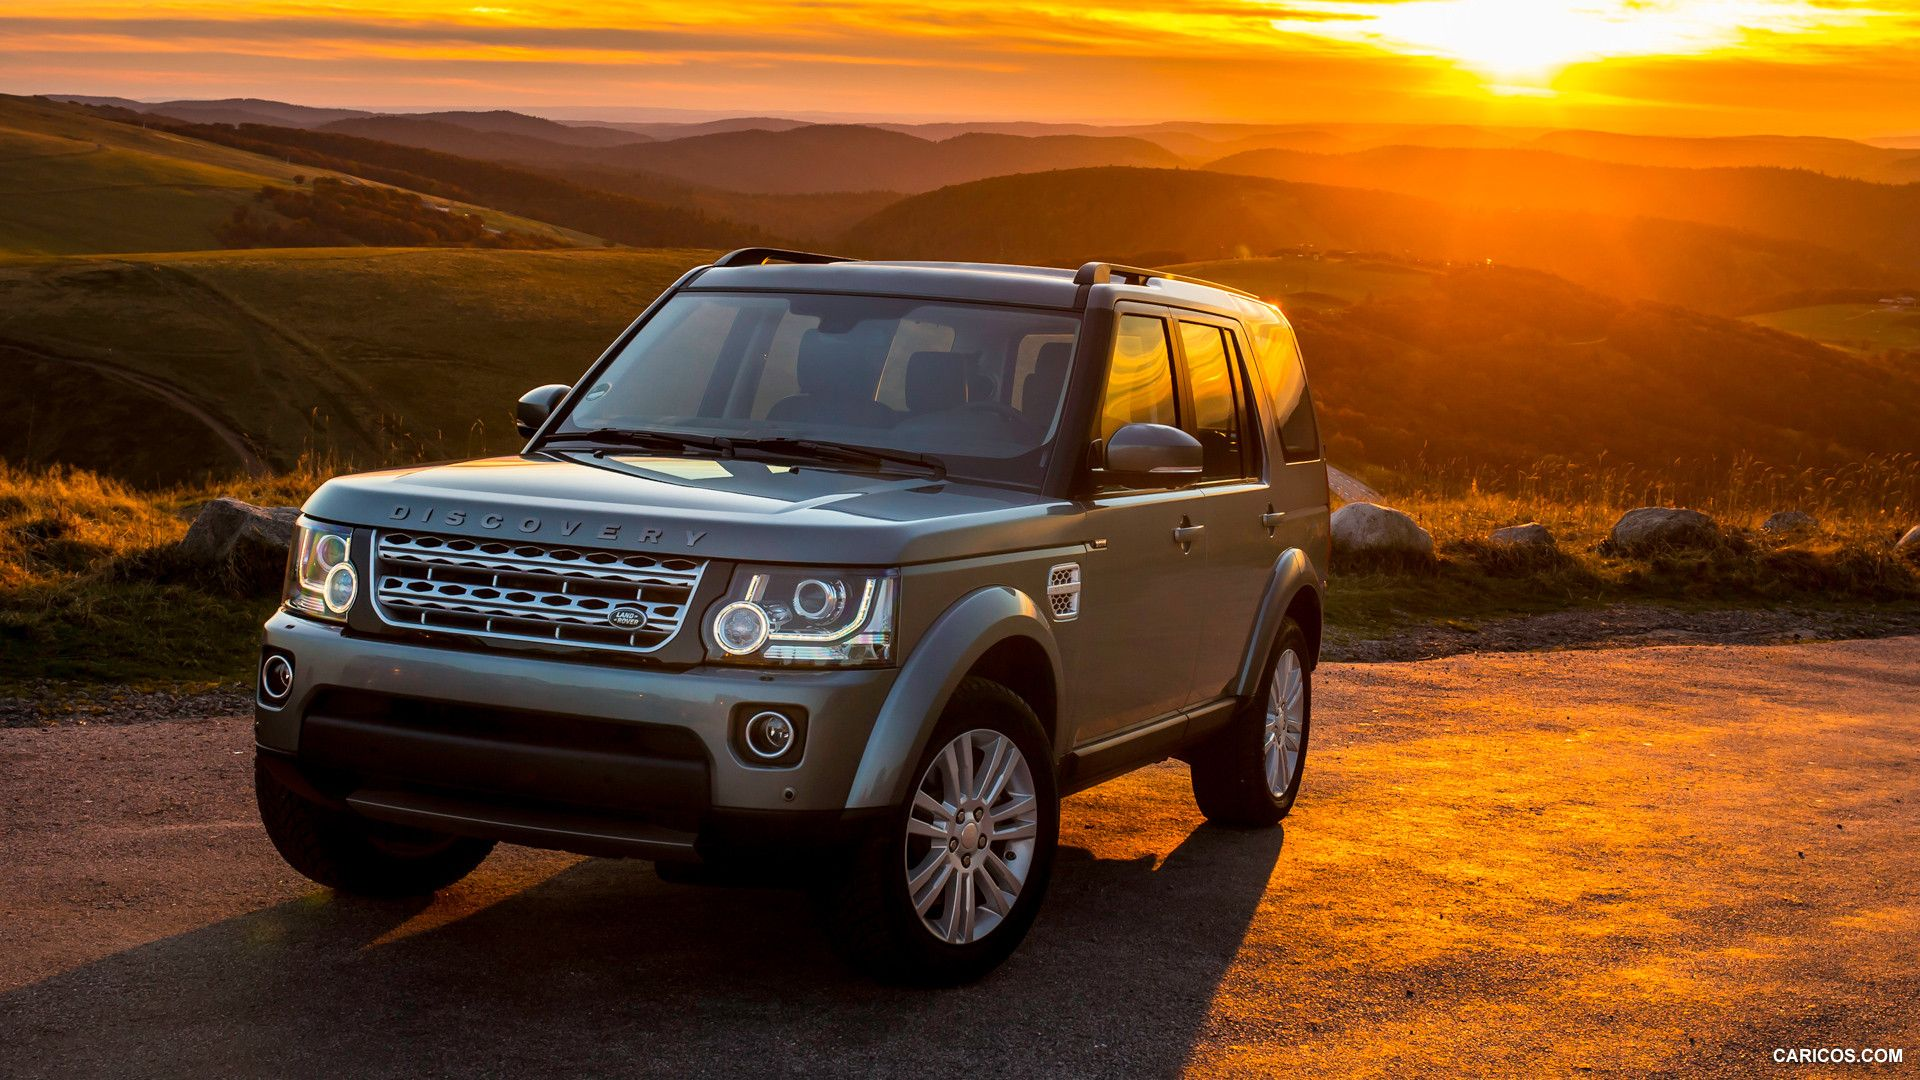 2014 Land Rover Discovery Wallpaper Land Rover Land Rover Discovery Jaguar Land Rover